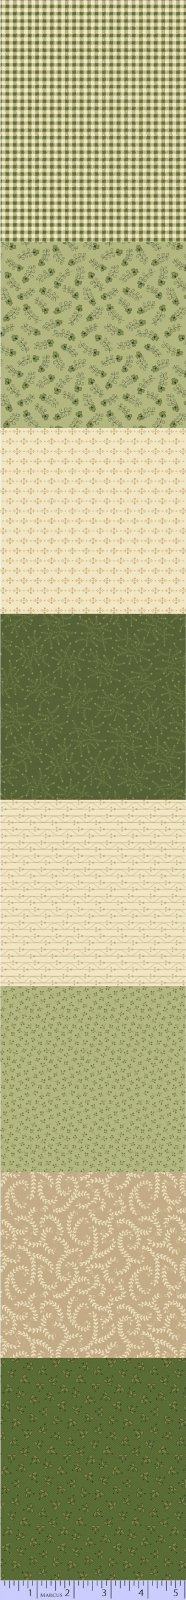 Patch-Its Green & Tan 8424-0514